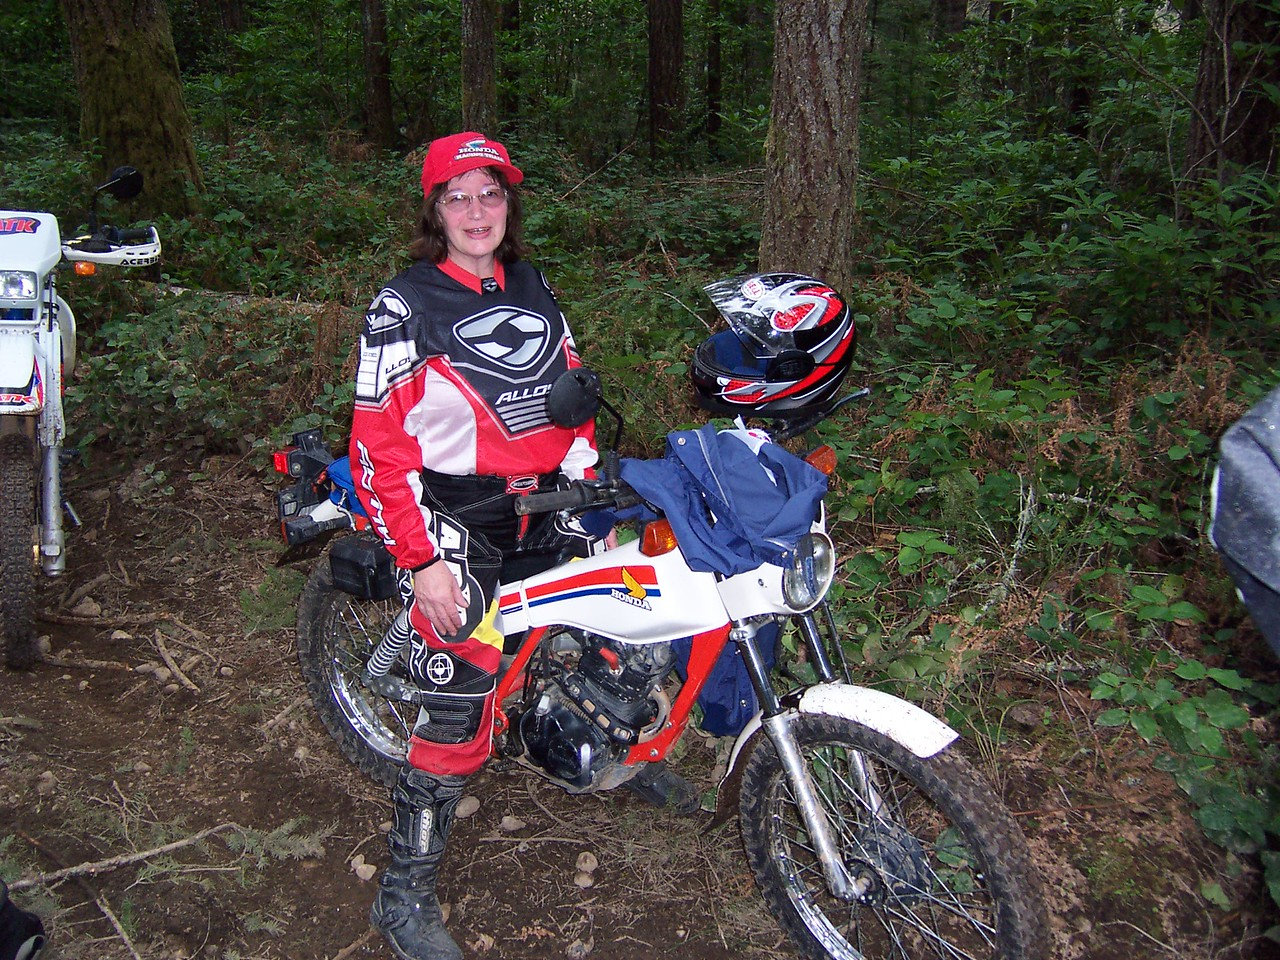 SuperSyl on her little Honda trials bike. She was doing pretty good for 60 years old.